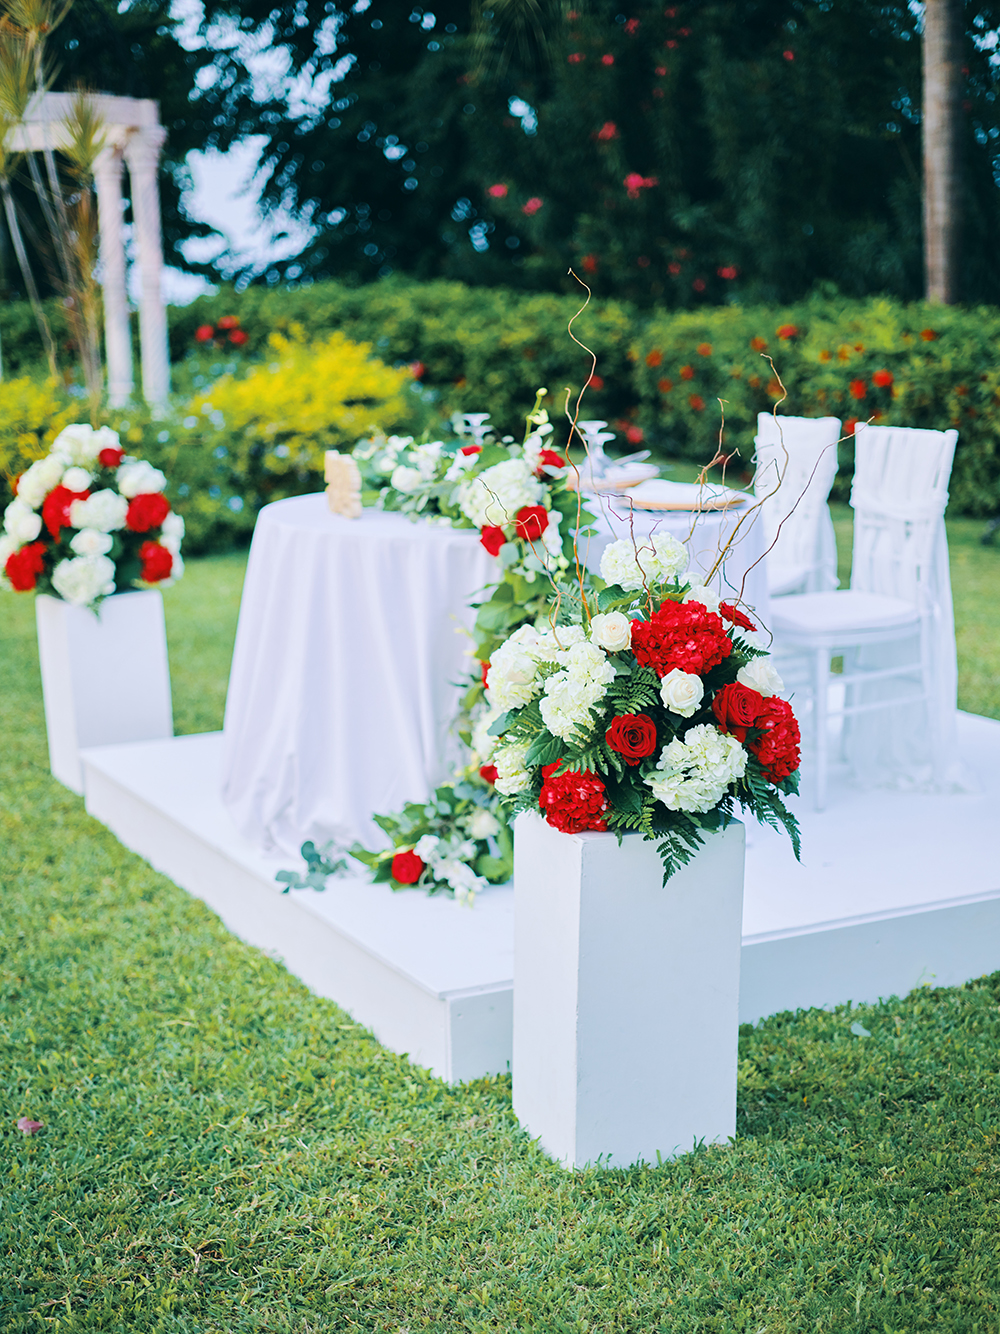 his her table - wedding reception decor - outside